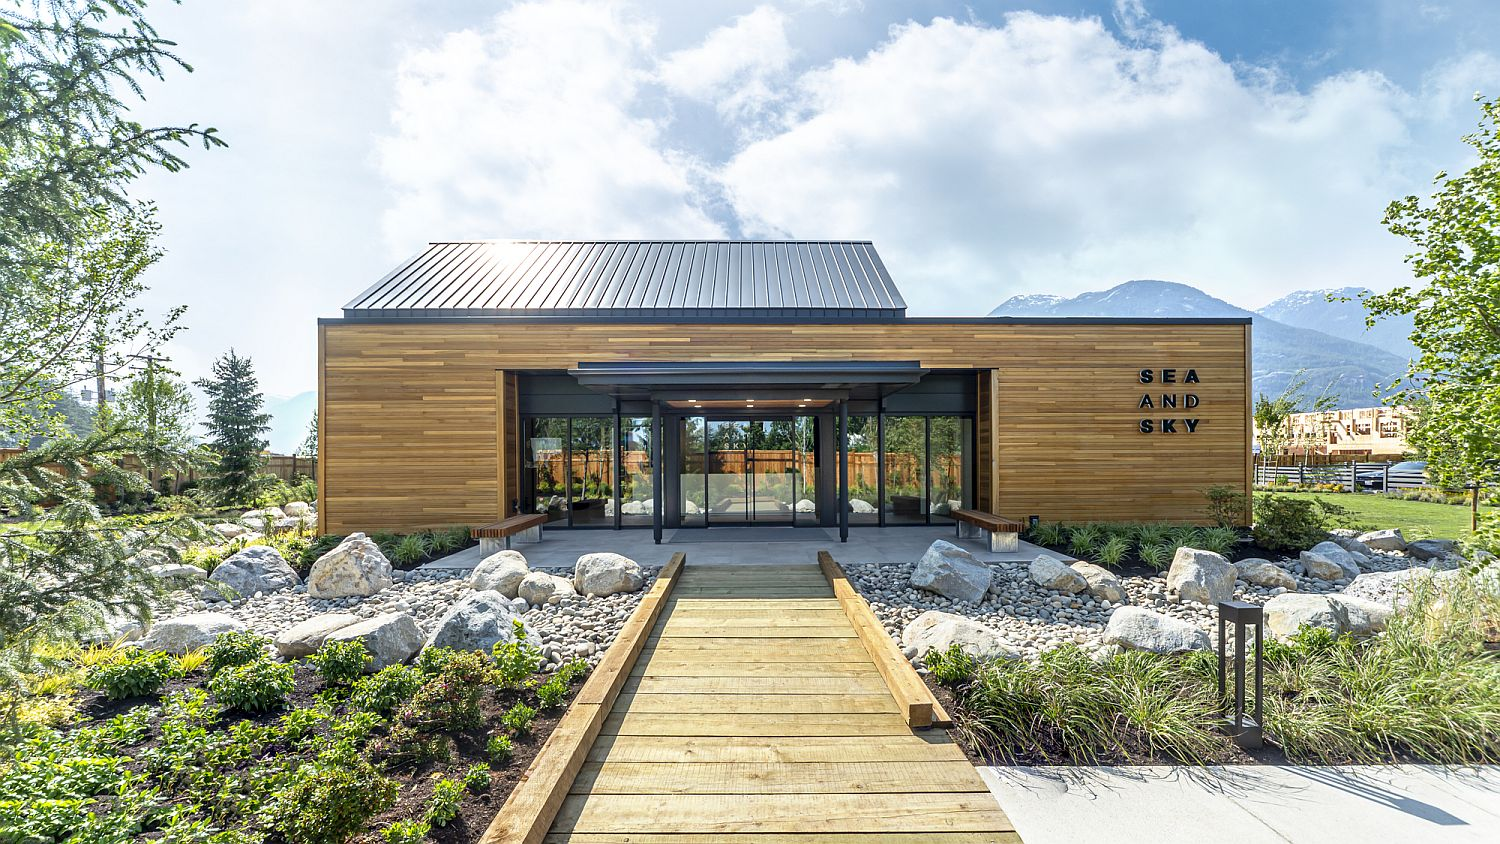 Wood-glass-and-metal-are-combined-beautifully-at-this-Canadian-building